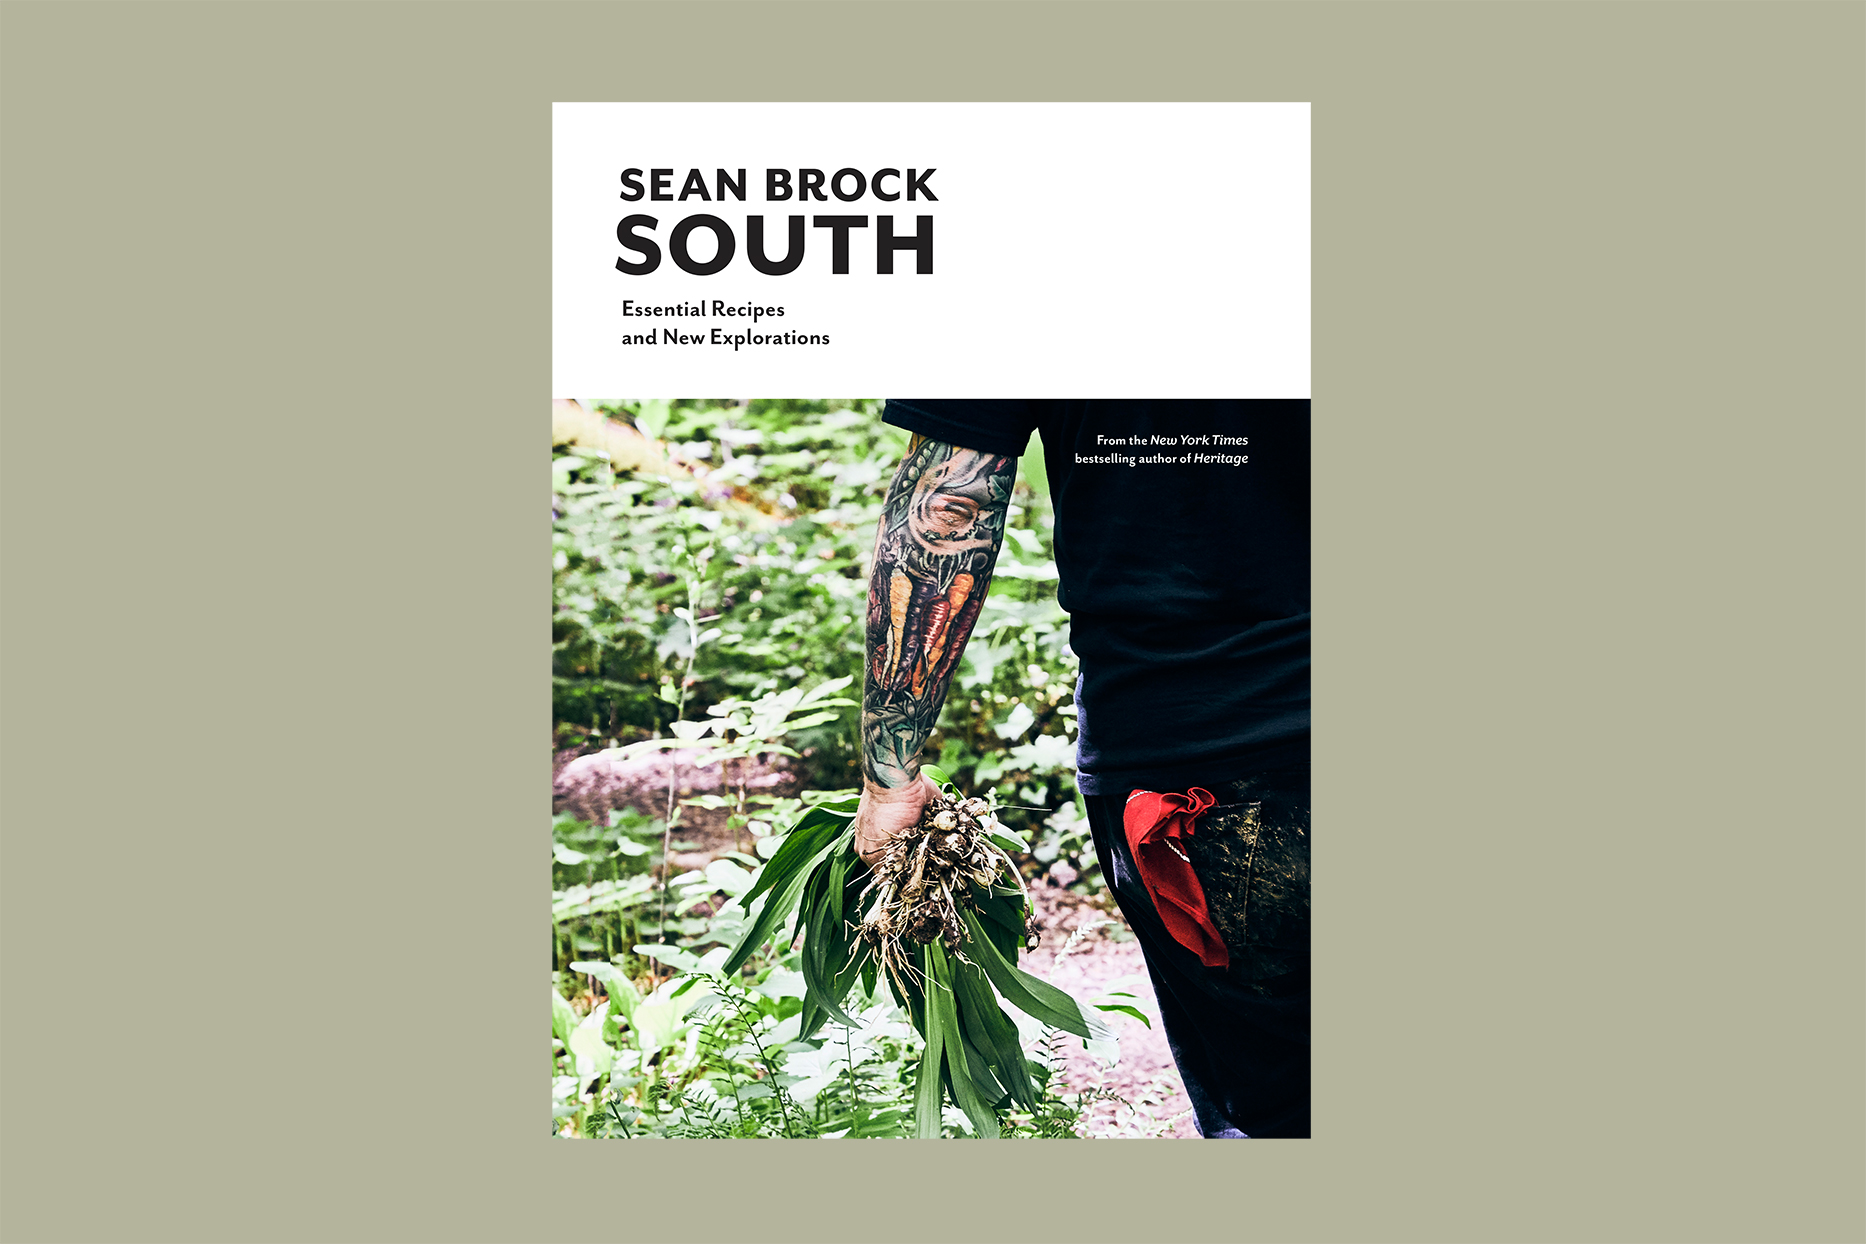 south sean brock cookbook